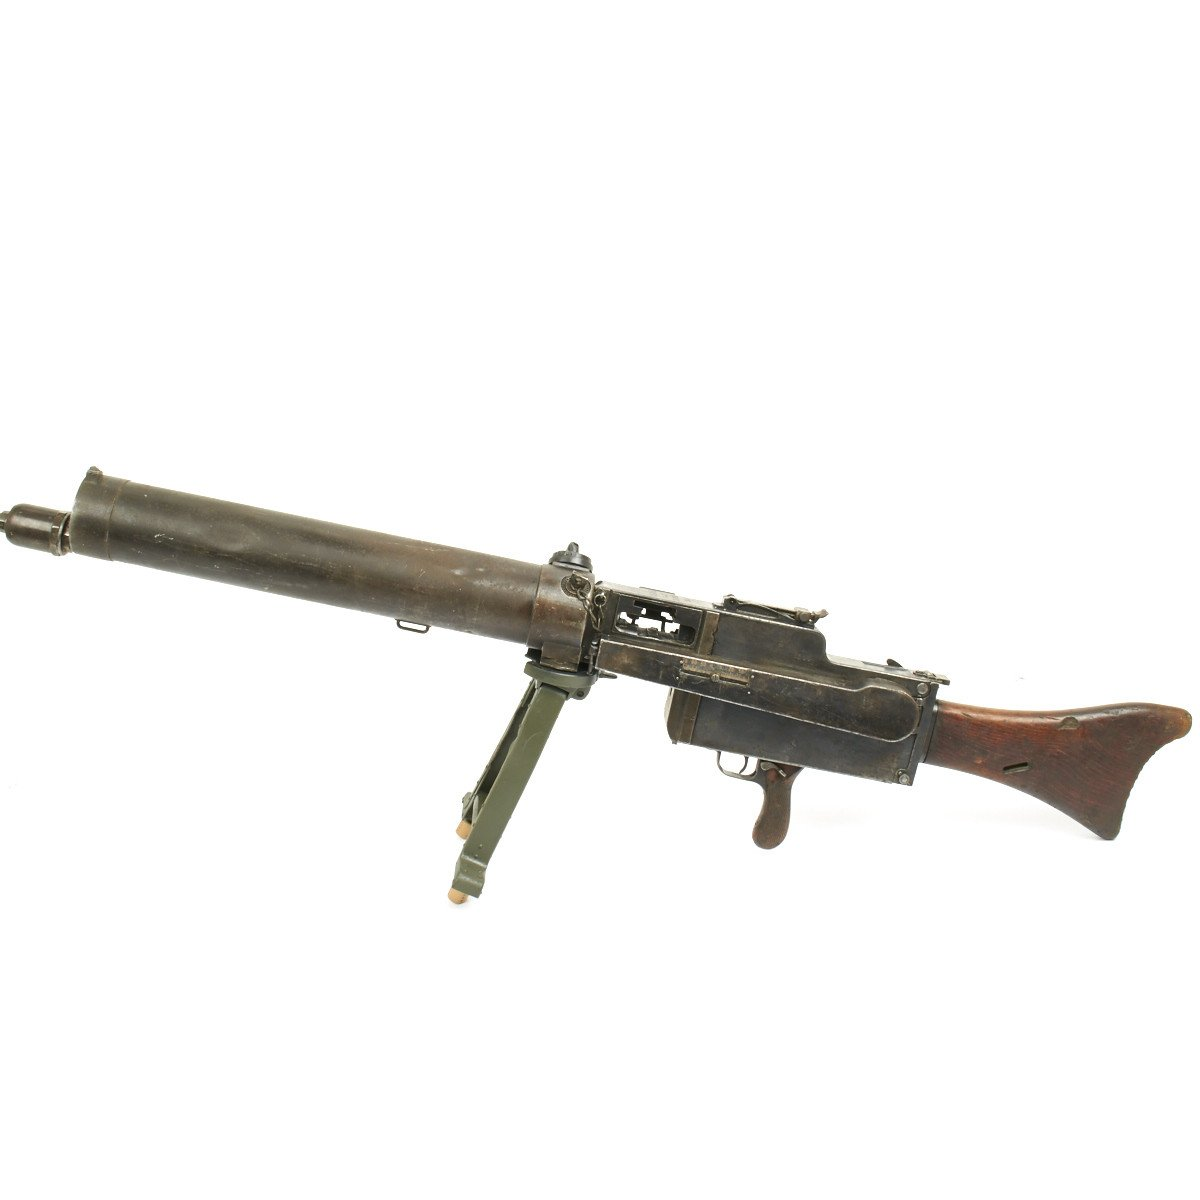 Original German WWI Maxim MG 08/15 Display Machine Gun- Spandau 1917